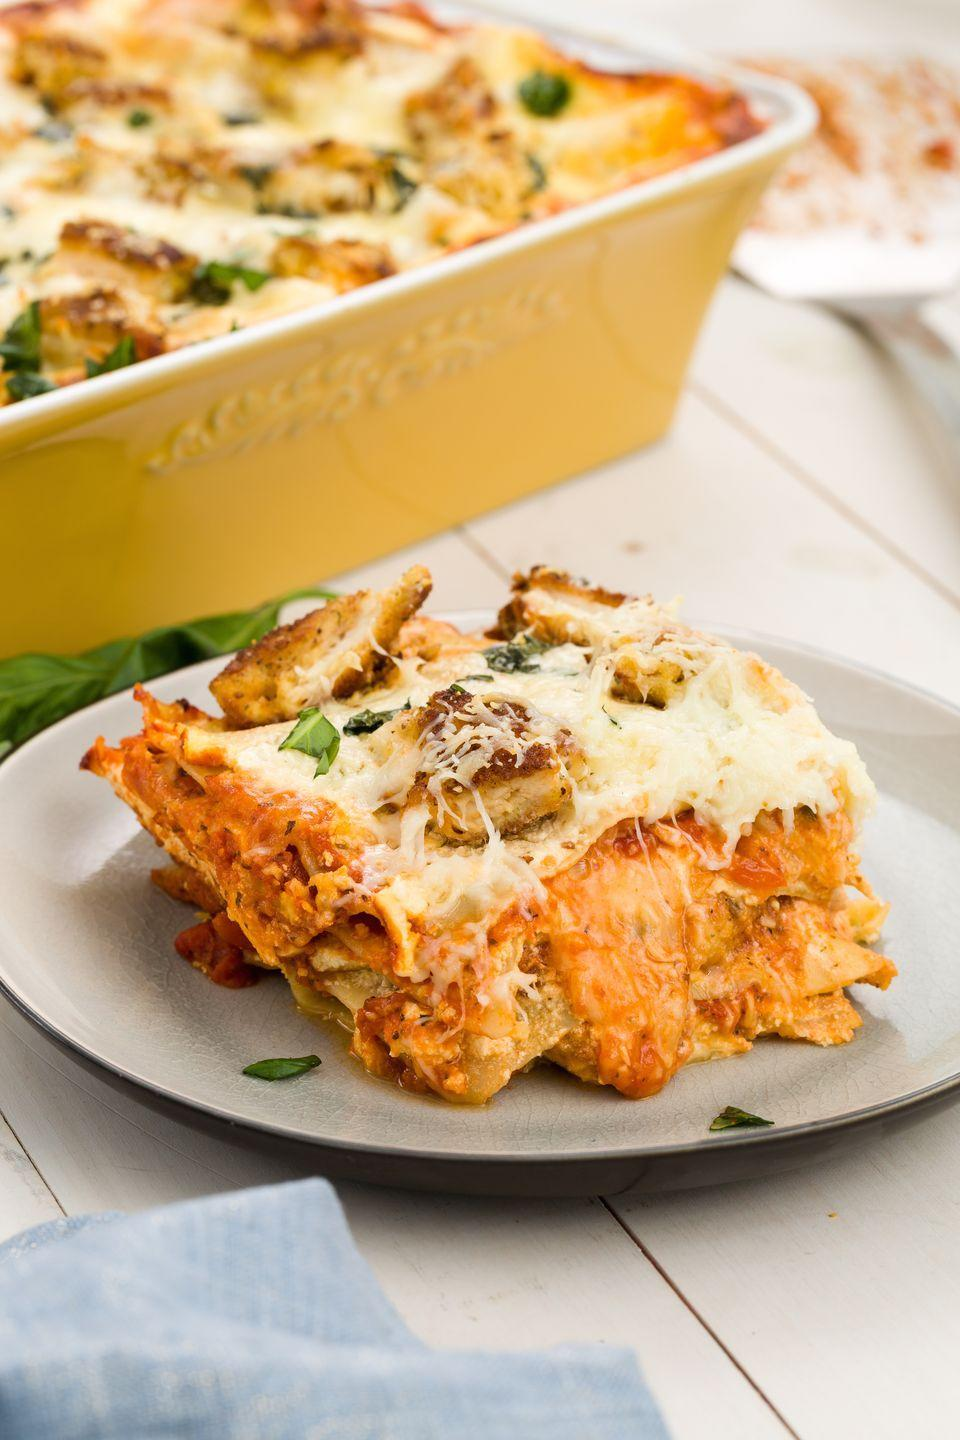 """<p>Any true chicken Parm fan knows that you can turn it into everything from <a href=""""http://rams.delish.com/cooking/recipe-ideas/recipes/a45480/skillet-chicken-parmesan-dip-recipe/"""" rel=""""nofollow noopener"""" target=""""_blank"""" data-ylk=""""slk:dip"""" class=""""link rapid-noclick-resp"""">dip</a> to <a href=""""https://www.delish.com/cooking/a44084/this-chicken-parm-soup-puts-all-other-soups-to-shame/?visibilityoverride"""" rel=""""nofollow noopener"""" target=""""_blank"""" data-ylk=""""slk:soup"""" class=""""link rapid-noclick-resp"""">soup</a>. This lasagna might be better than both.</p><p>Get the recipe from <a href=""""https://www.delish.com/cooking/recipe-ideas/recipes/a45578/chicken-parm-lasagna-recipe/"""" rel=""""nofollow noopener"""" target=""""_blank"""" data-ylk=""""slk:Delish"""" class=""""link rapid-noclick-resp"""">Delish</a>.</p>"""